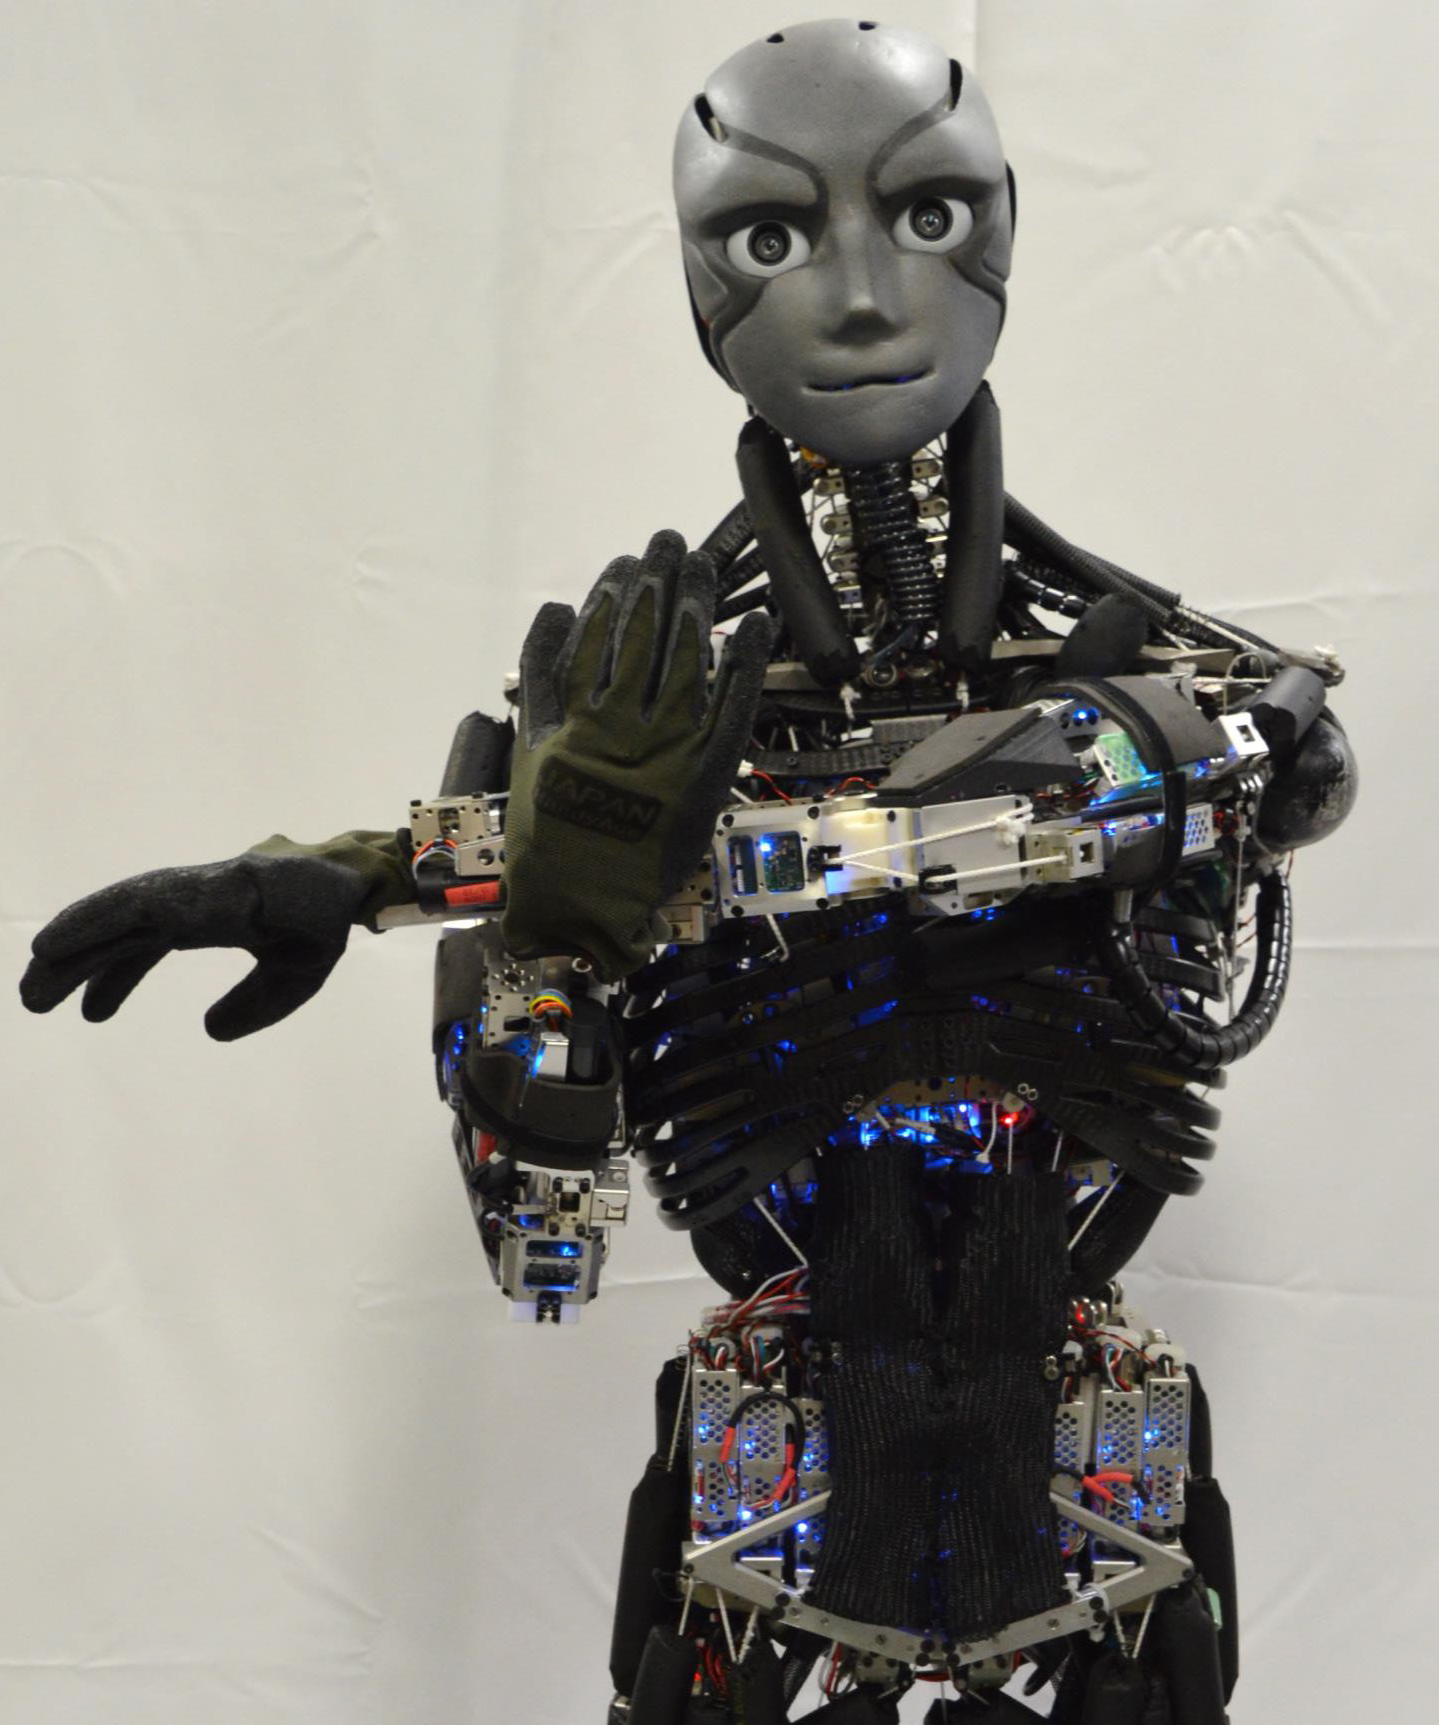 Japanese Researchers Most Unveil Life Life Humanoid Robots The Engineer